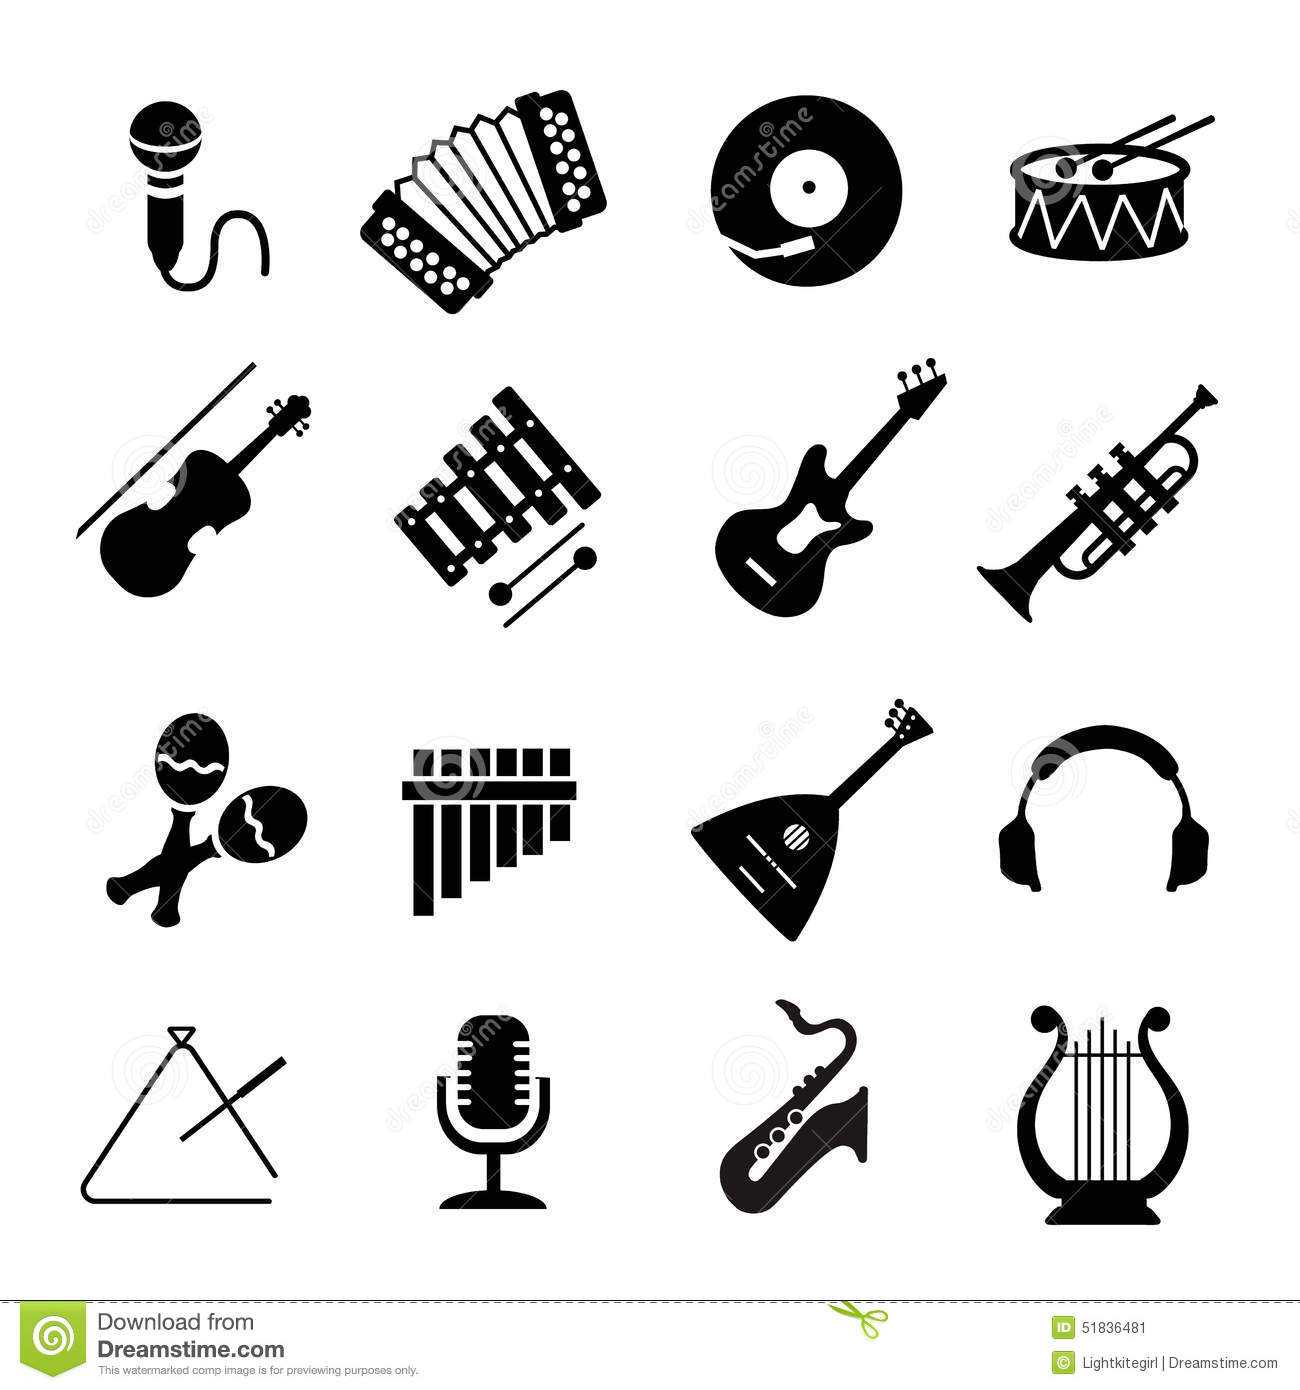 Guitar Clipart Image 7420 besides Downloads additionally Writetracks wordpress also Guitar Clipart Black And White 26595 additionally Tattoo Gallery By Gregory Hinson. on electric guitar tools